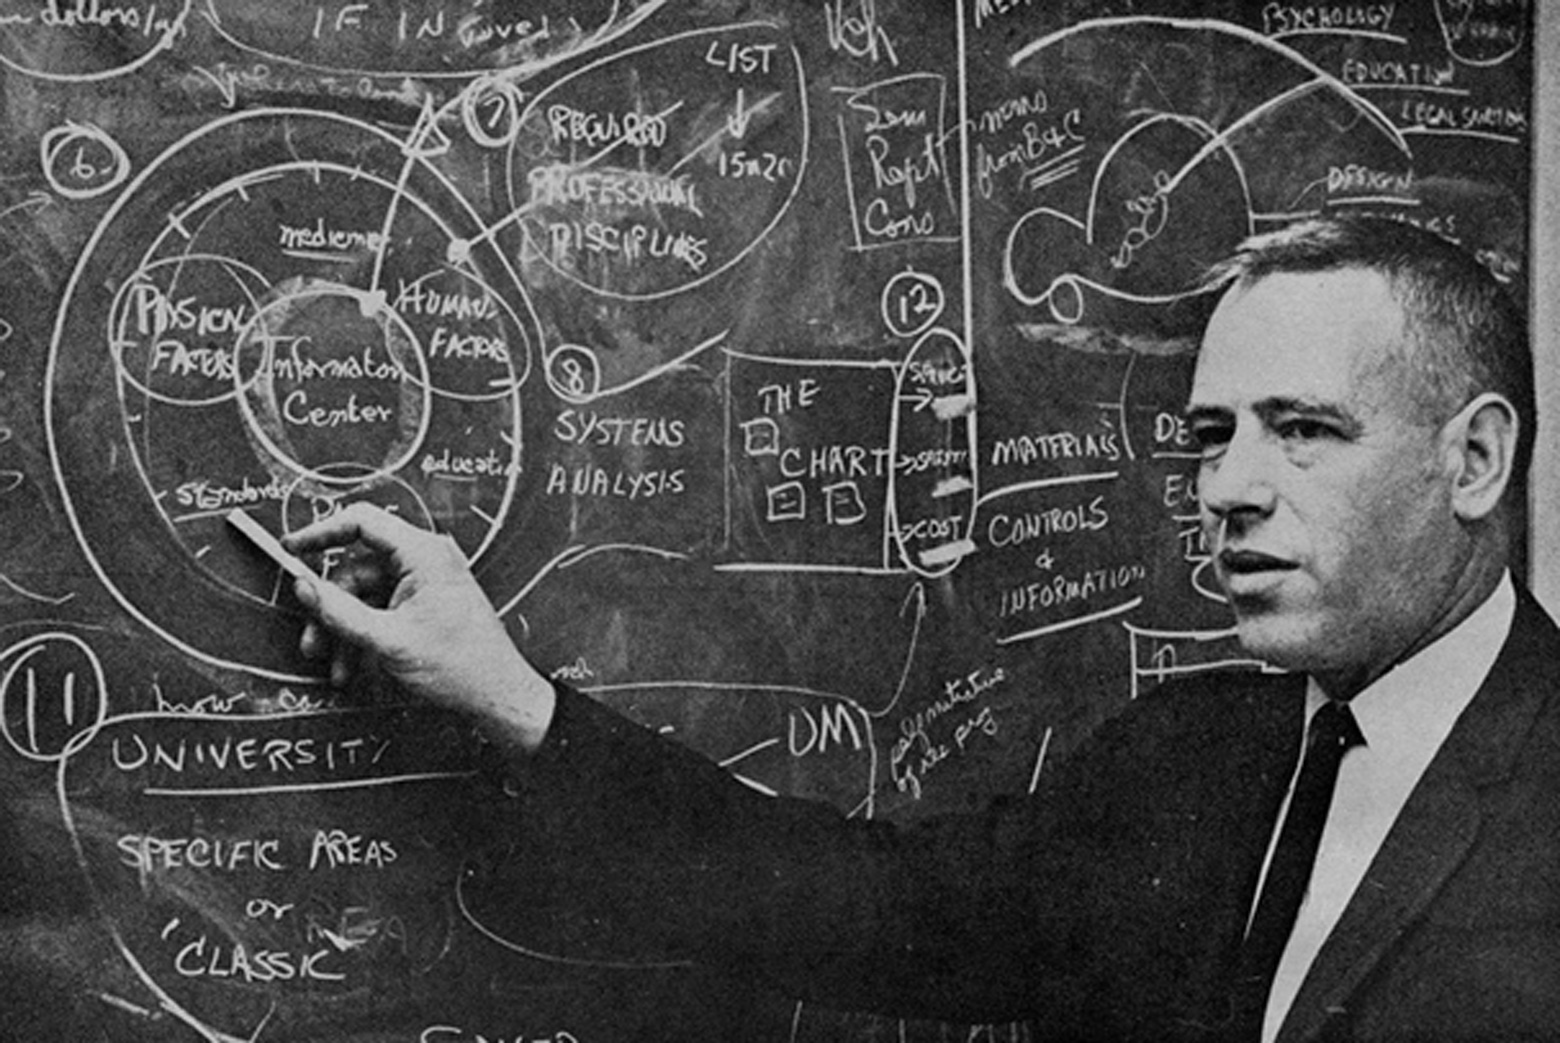 A black and white photo of a man pointing to a chalkboard covered in notes